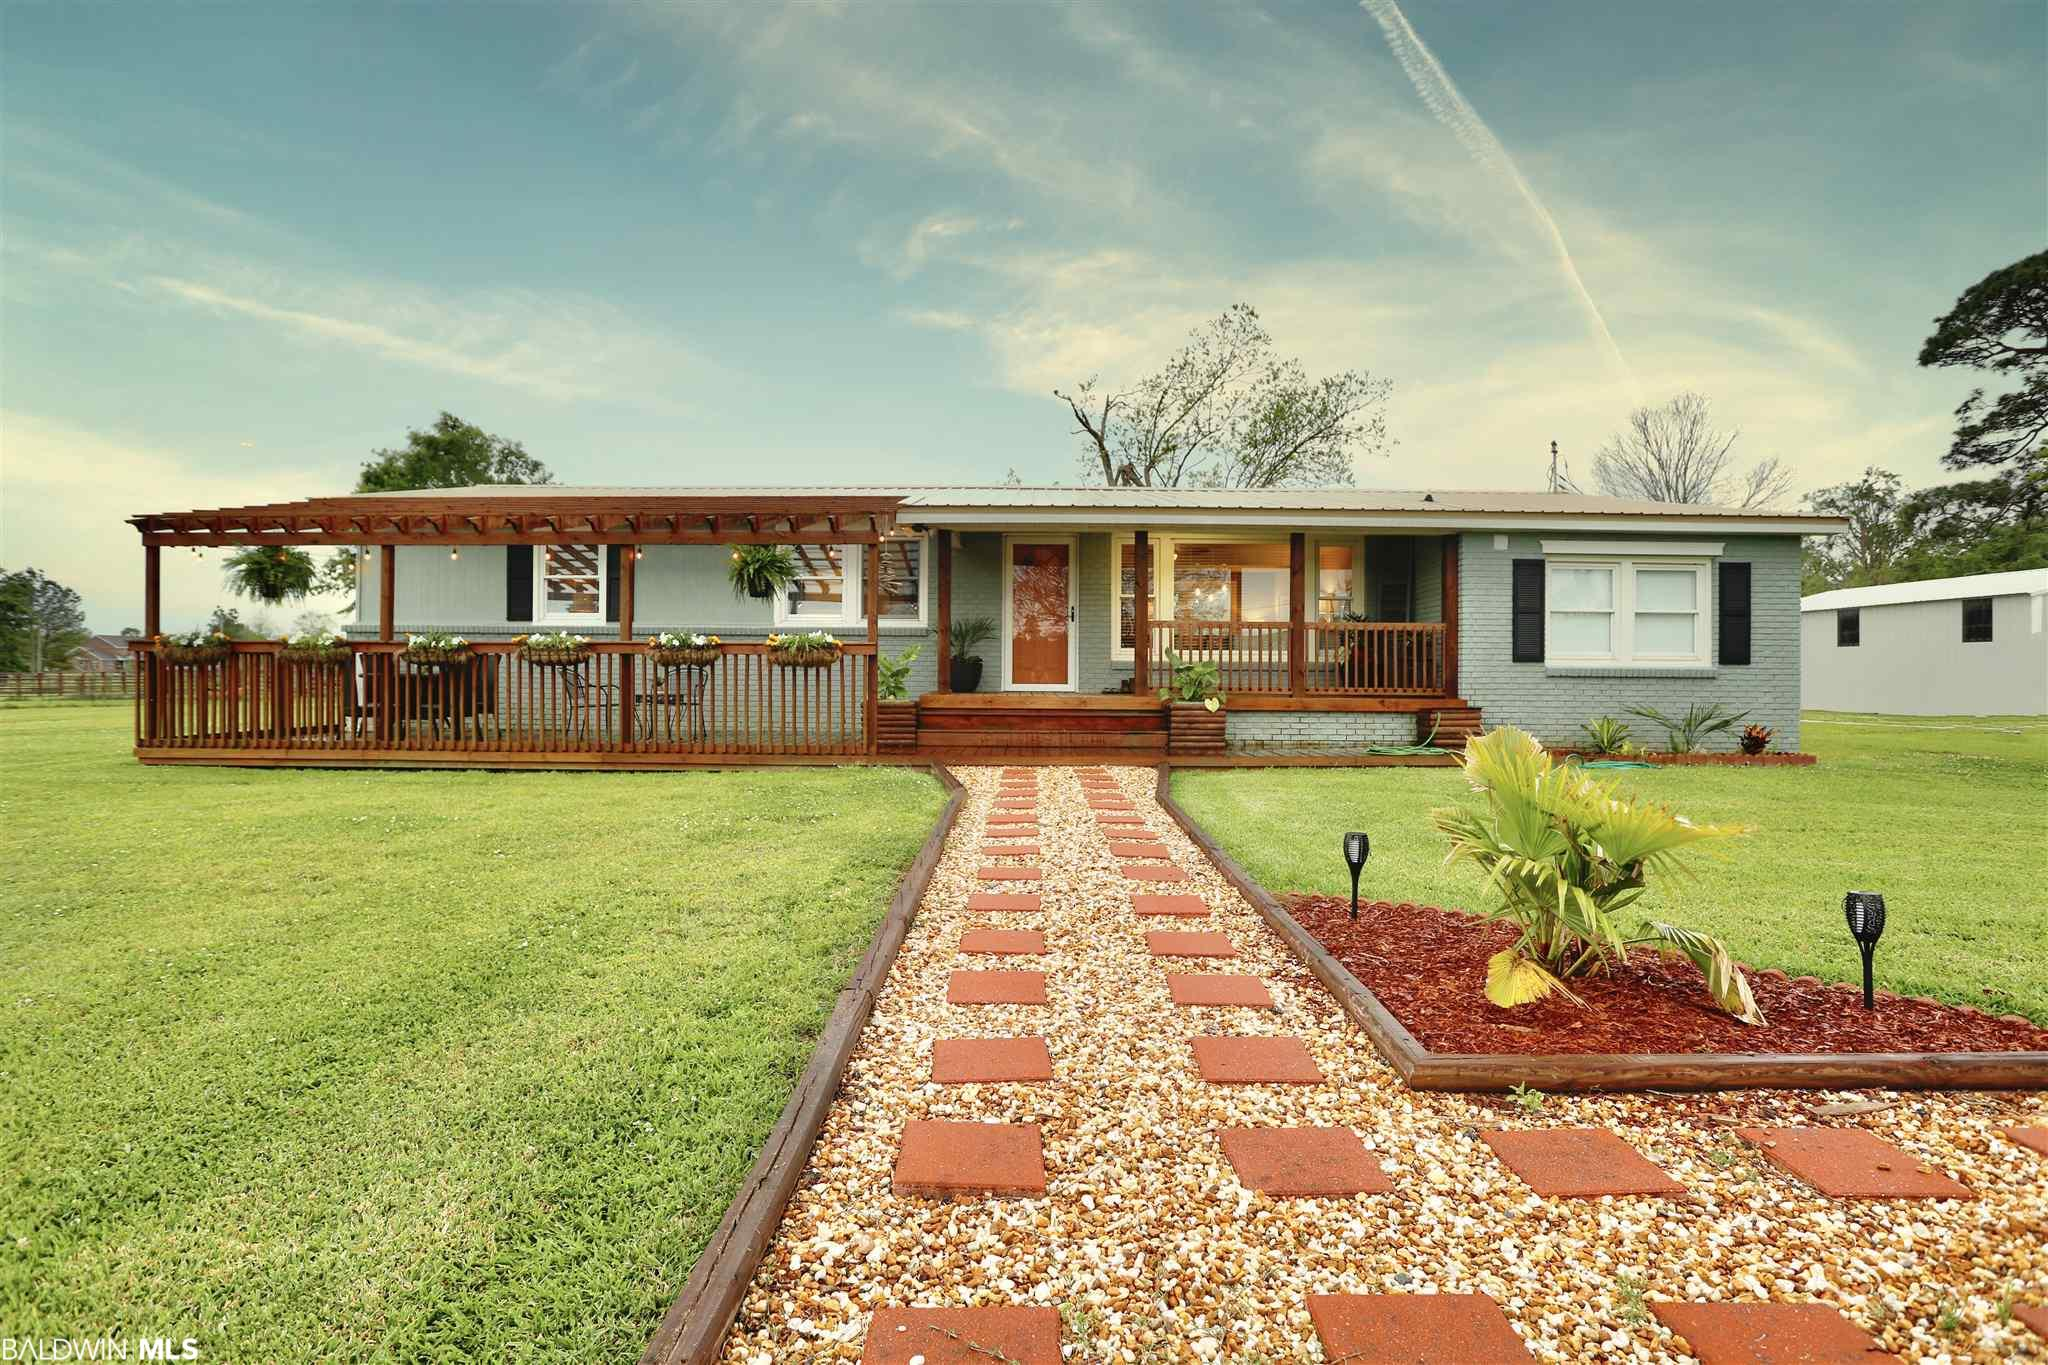 Remodeled 4 Bedroom, 3 Bath, Beautiful Home sitting on 1.4 Acres!  The upgrades built into this home are absolutely stunning.  Every small detail is put in the right place.  The kitchen is the perfect place to entertain which opens up into a spacious living room to relax.  The master bathroom looks like you walking right into a Spa with a free standing soaking tub, a stone and tile shower and double vanities!  You  can relax on your front porch or out your back door into your sitting area while enjoying a cocktail and grilling tonight's dinner.  The property comes with a 24' X 40' Metal workshop/garage that is perfect for storage and the perfect shop work out of!  You are away from the hustle of the city but close enough to I-10 to get anywhere fast!